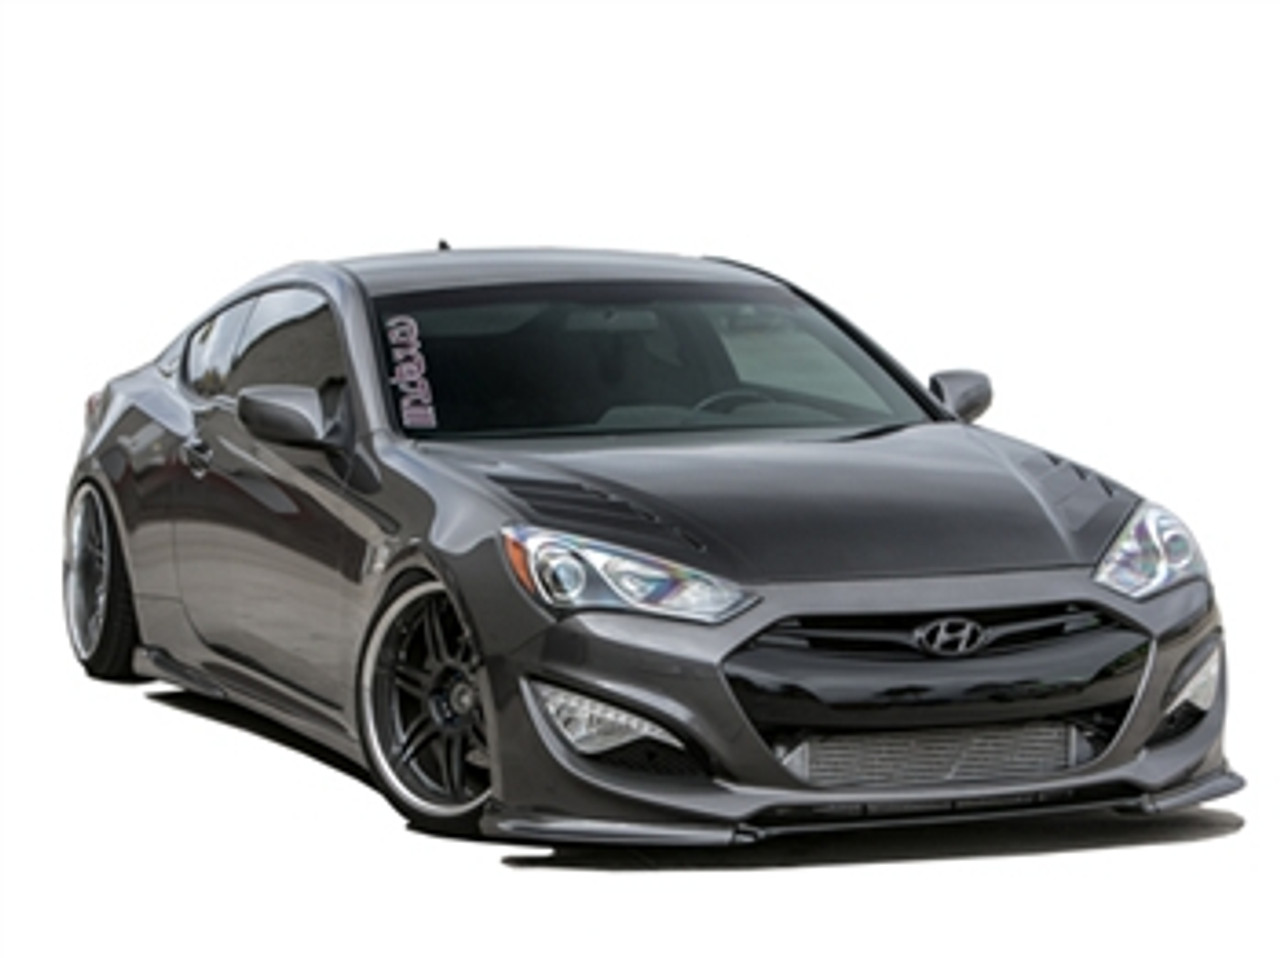 small resolution of rksport carbon fiber vented hood for hyundai genesis coupe 2013 2016